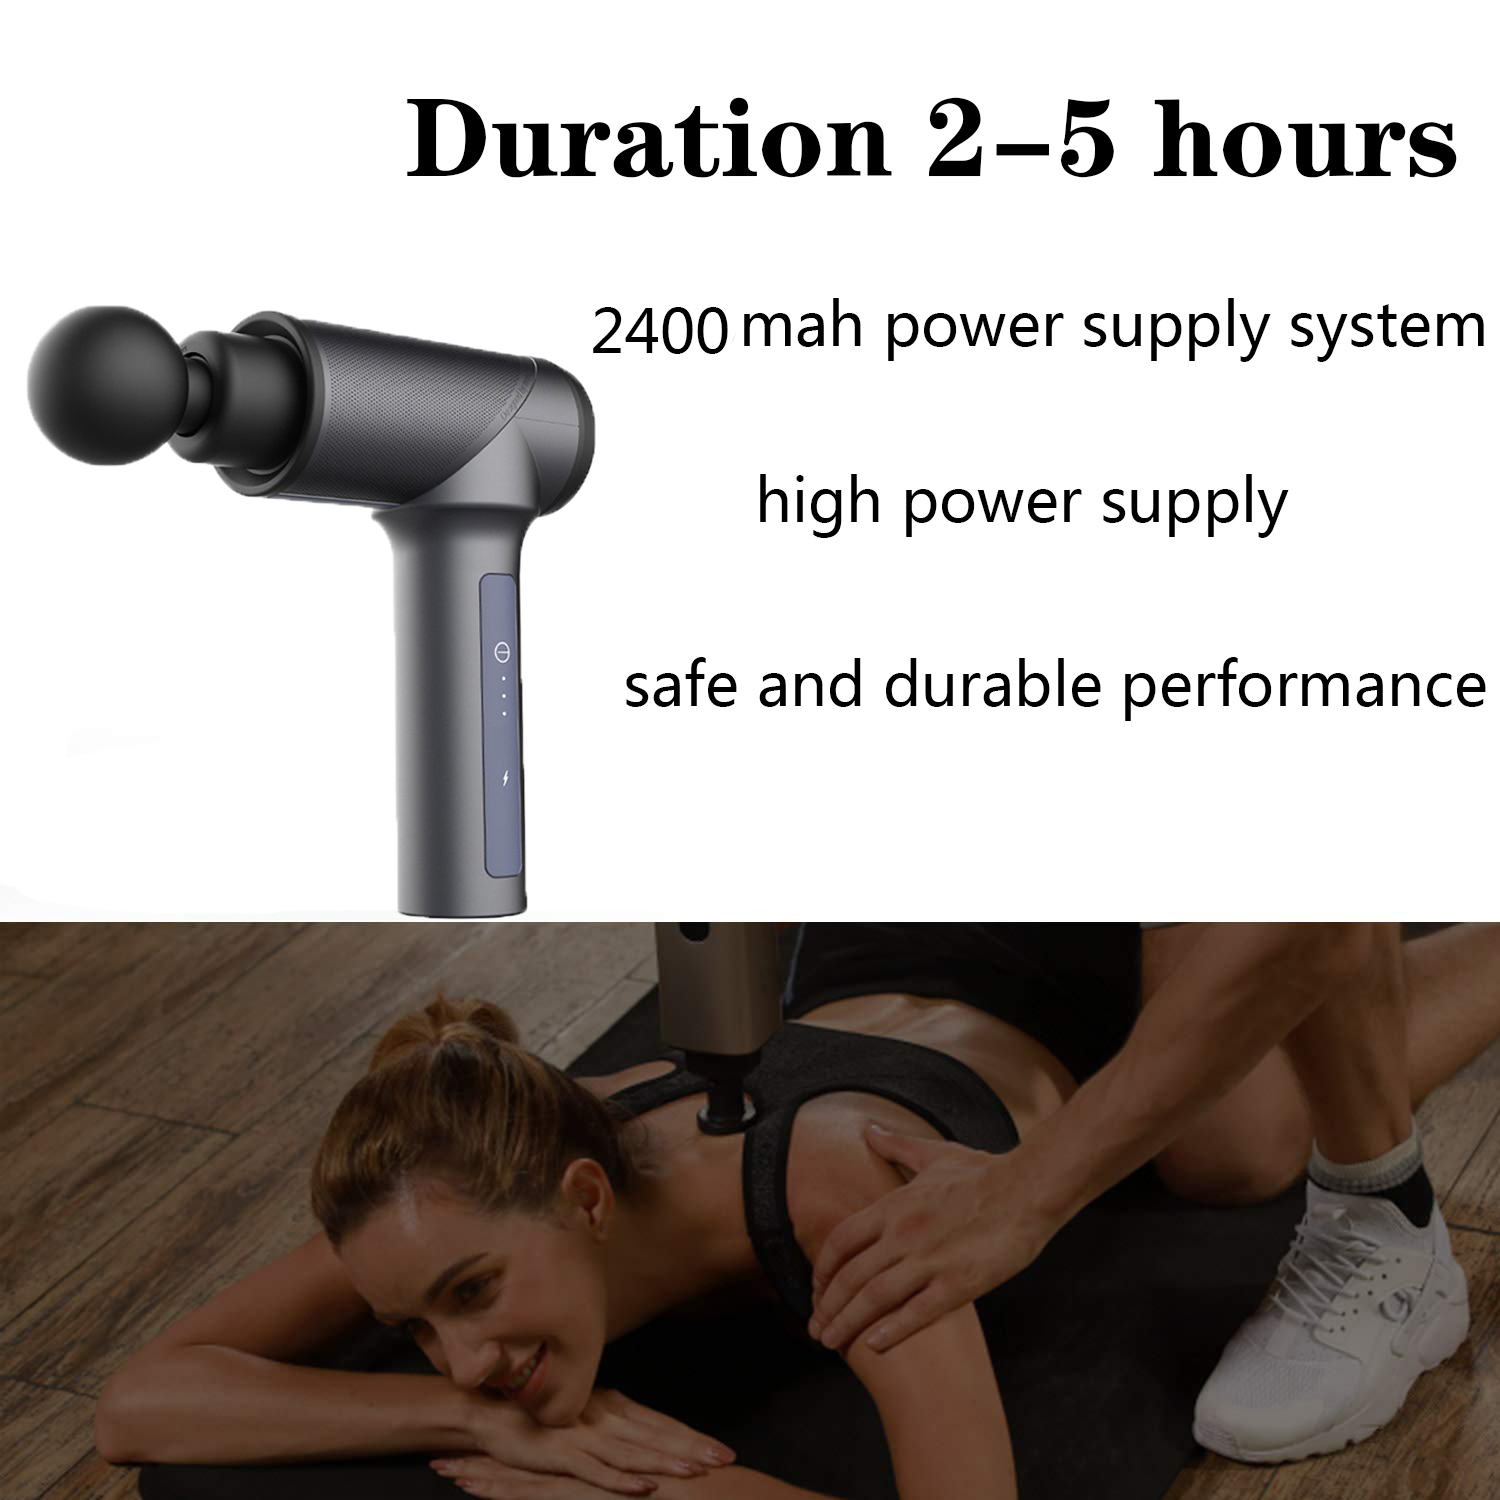 Therapy Fascia Hand Held Rechargeable 24V Cordless Deep Tissue Vibration Massage Gun